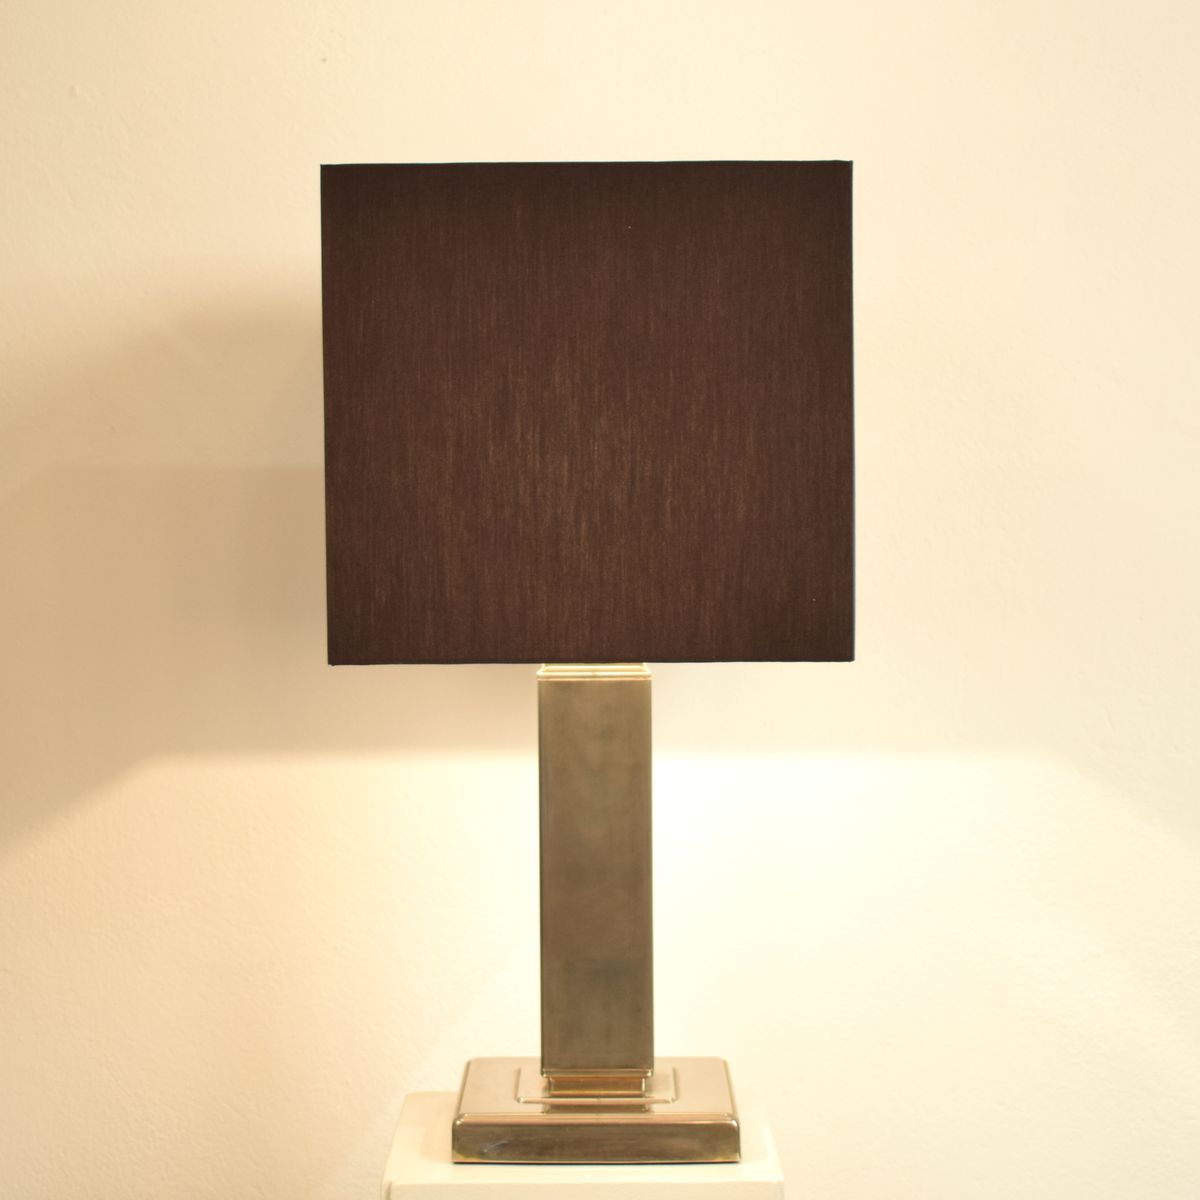 Black table lamp - Vintage Art Deco Chromed Table Lamp With Black Fabric Shade